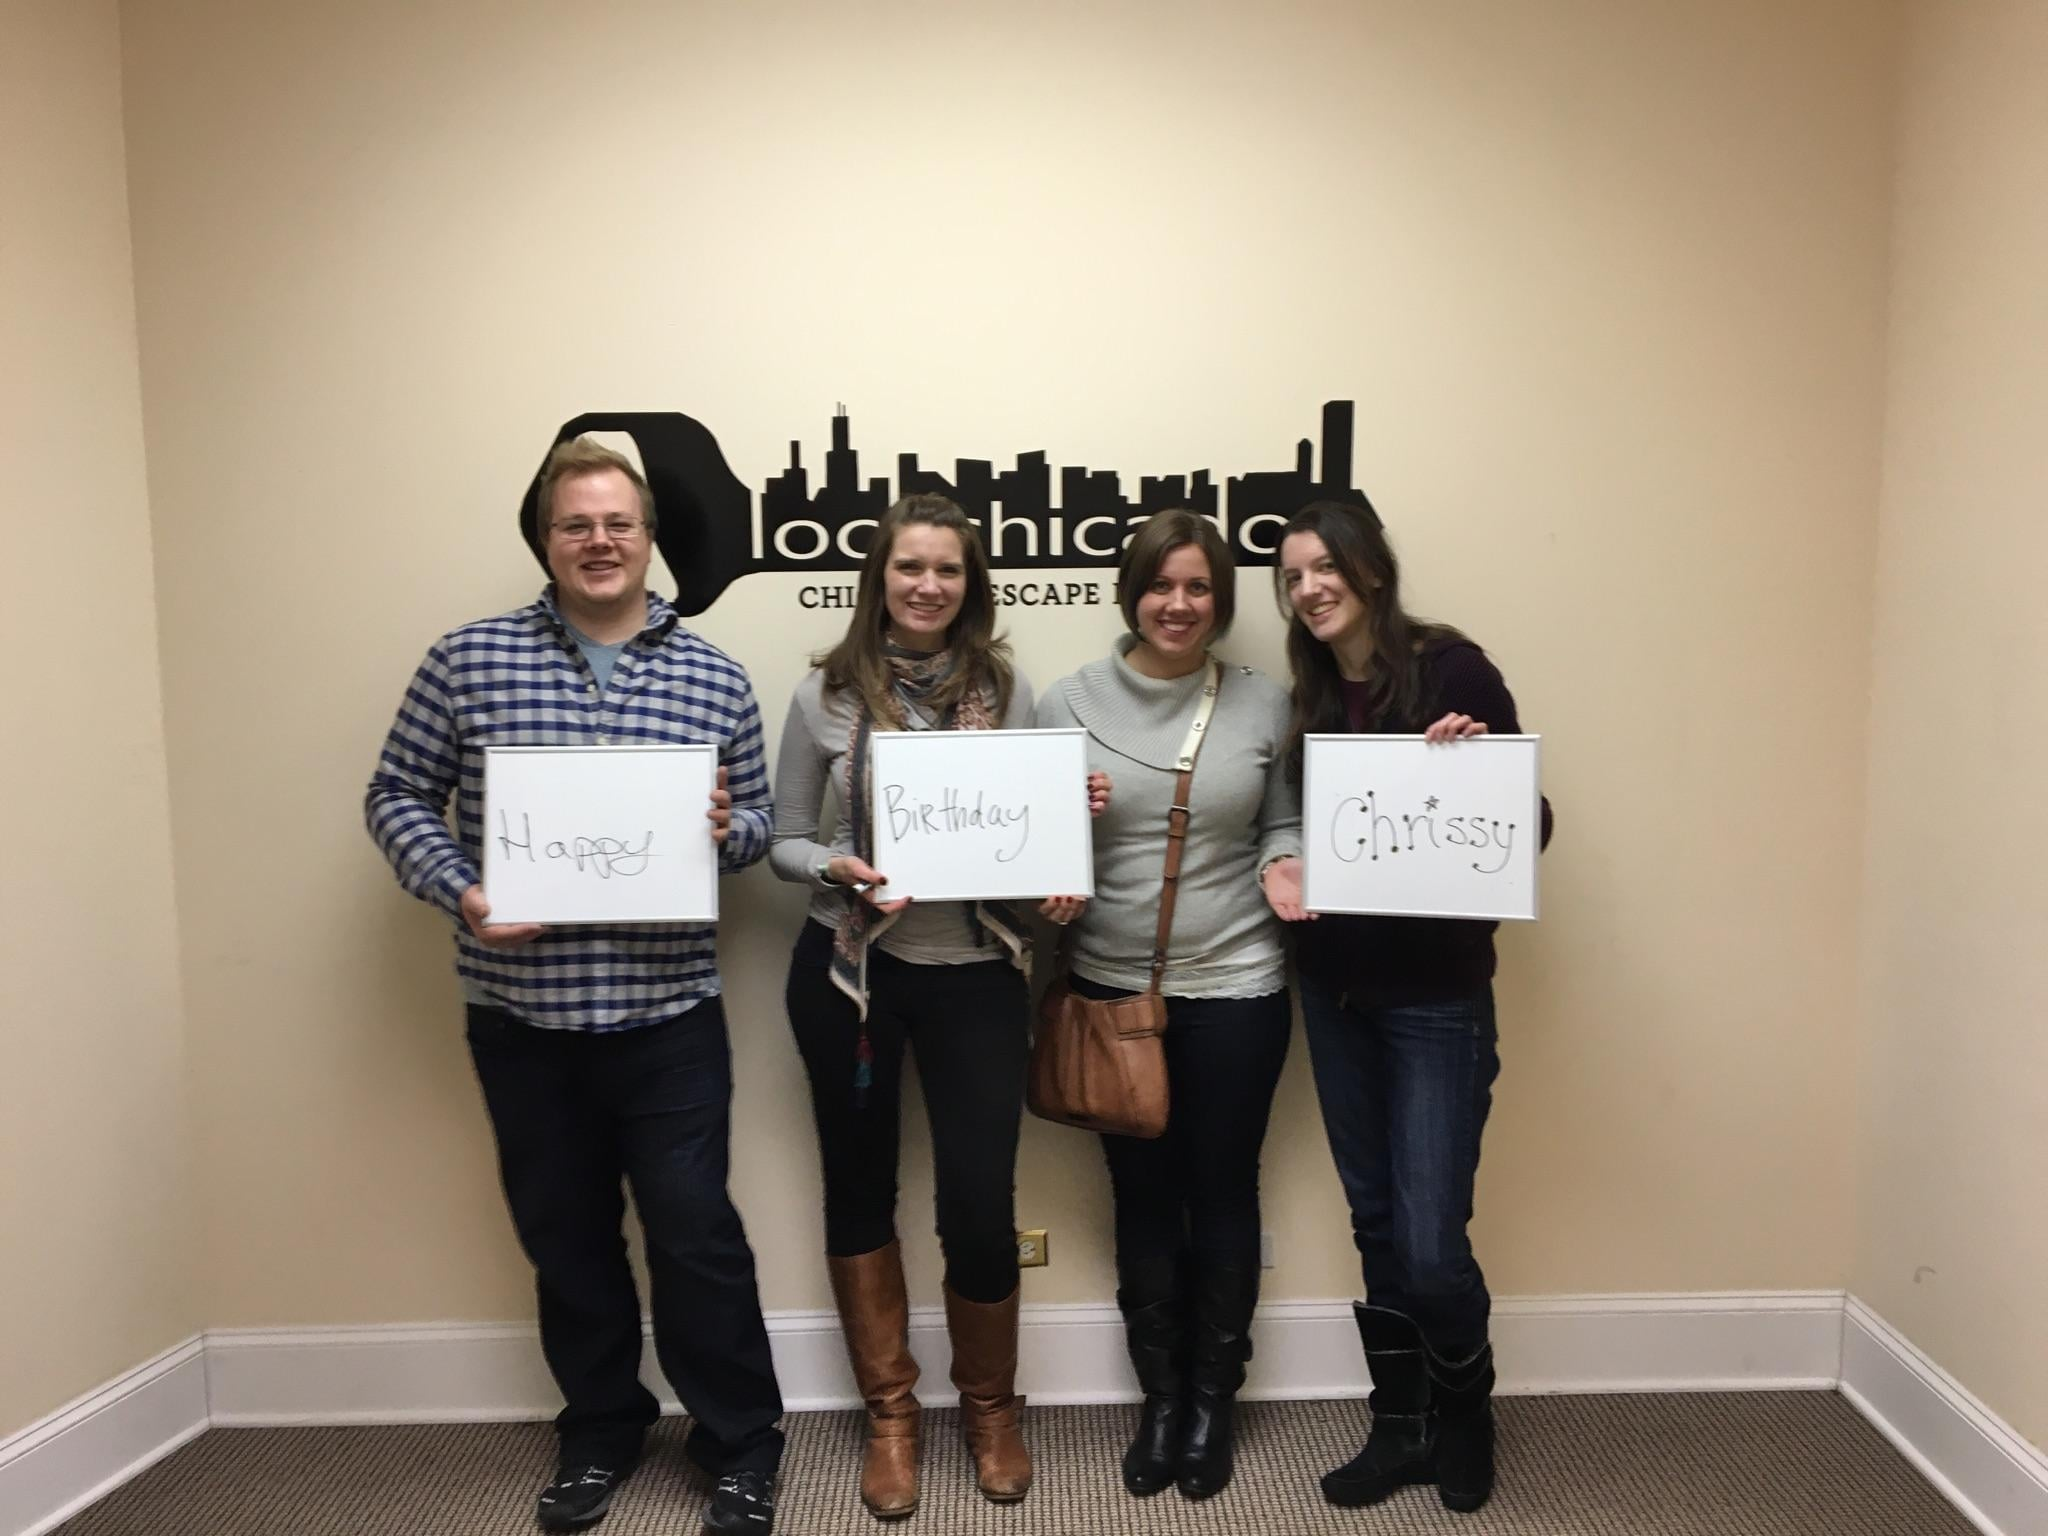 Happy Birthday Chrissy! Thanks for spening it challenging the escape room here at Lock Chicago!